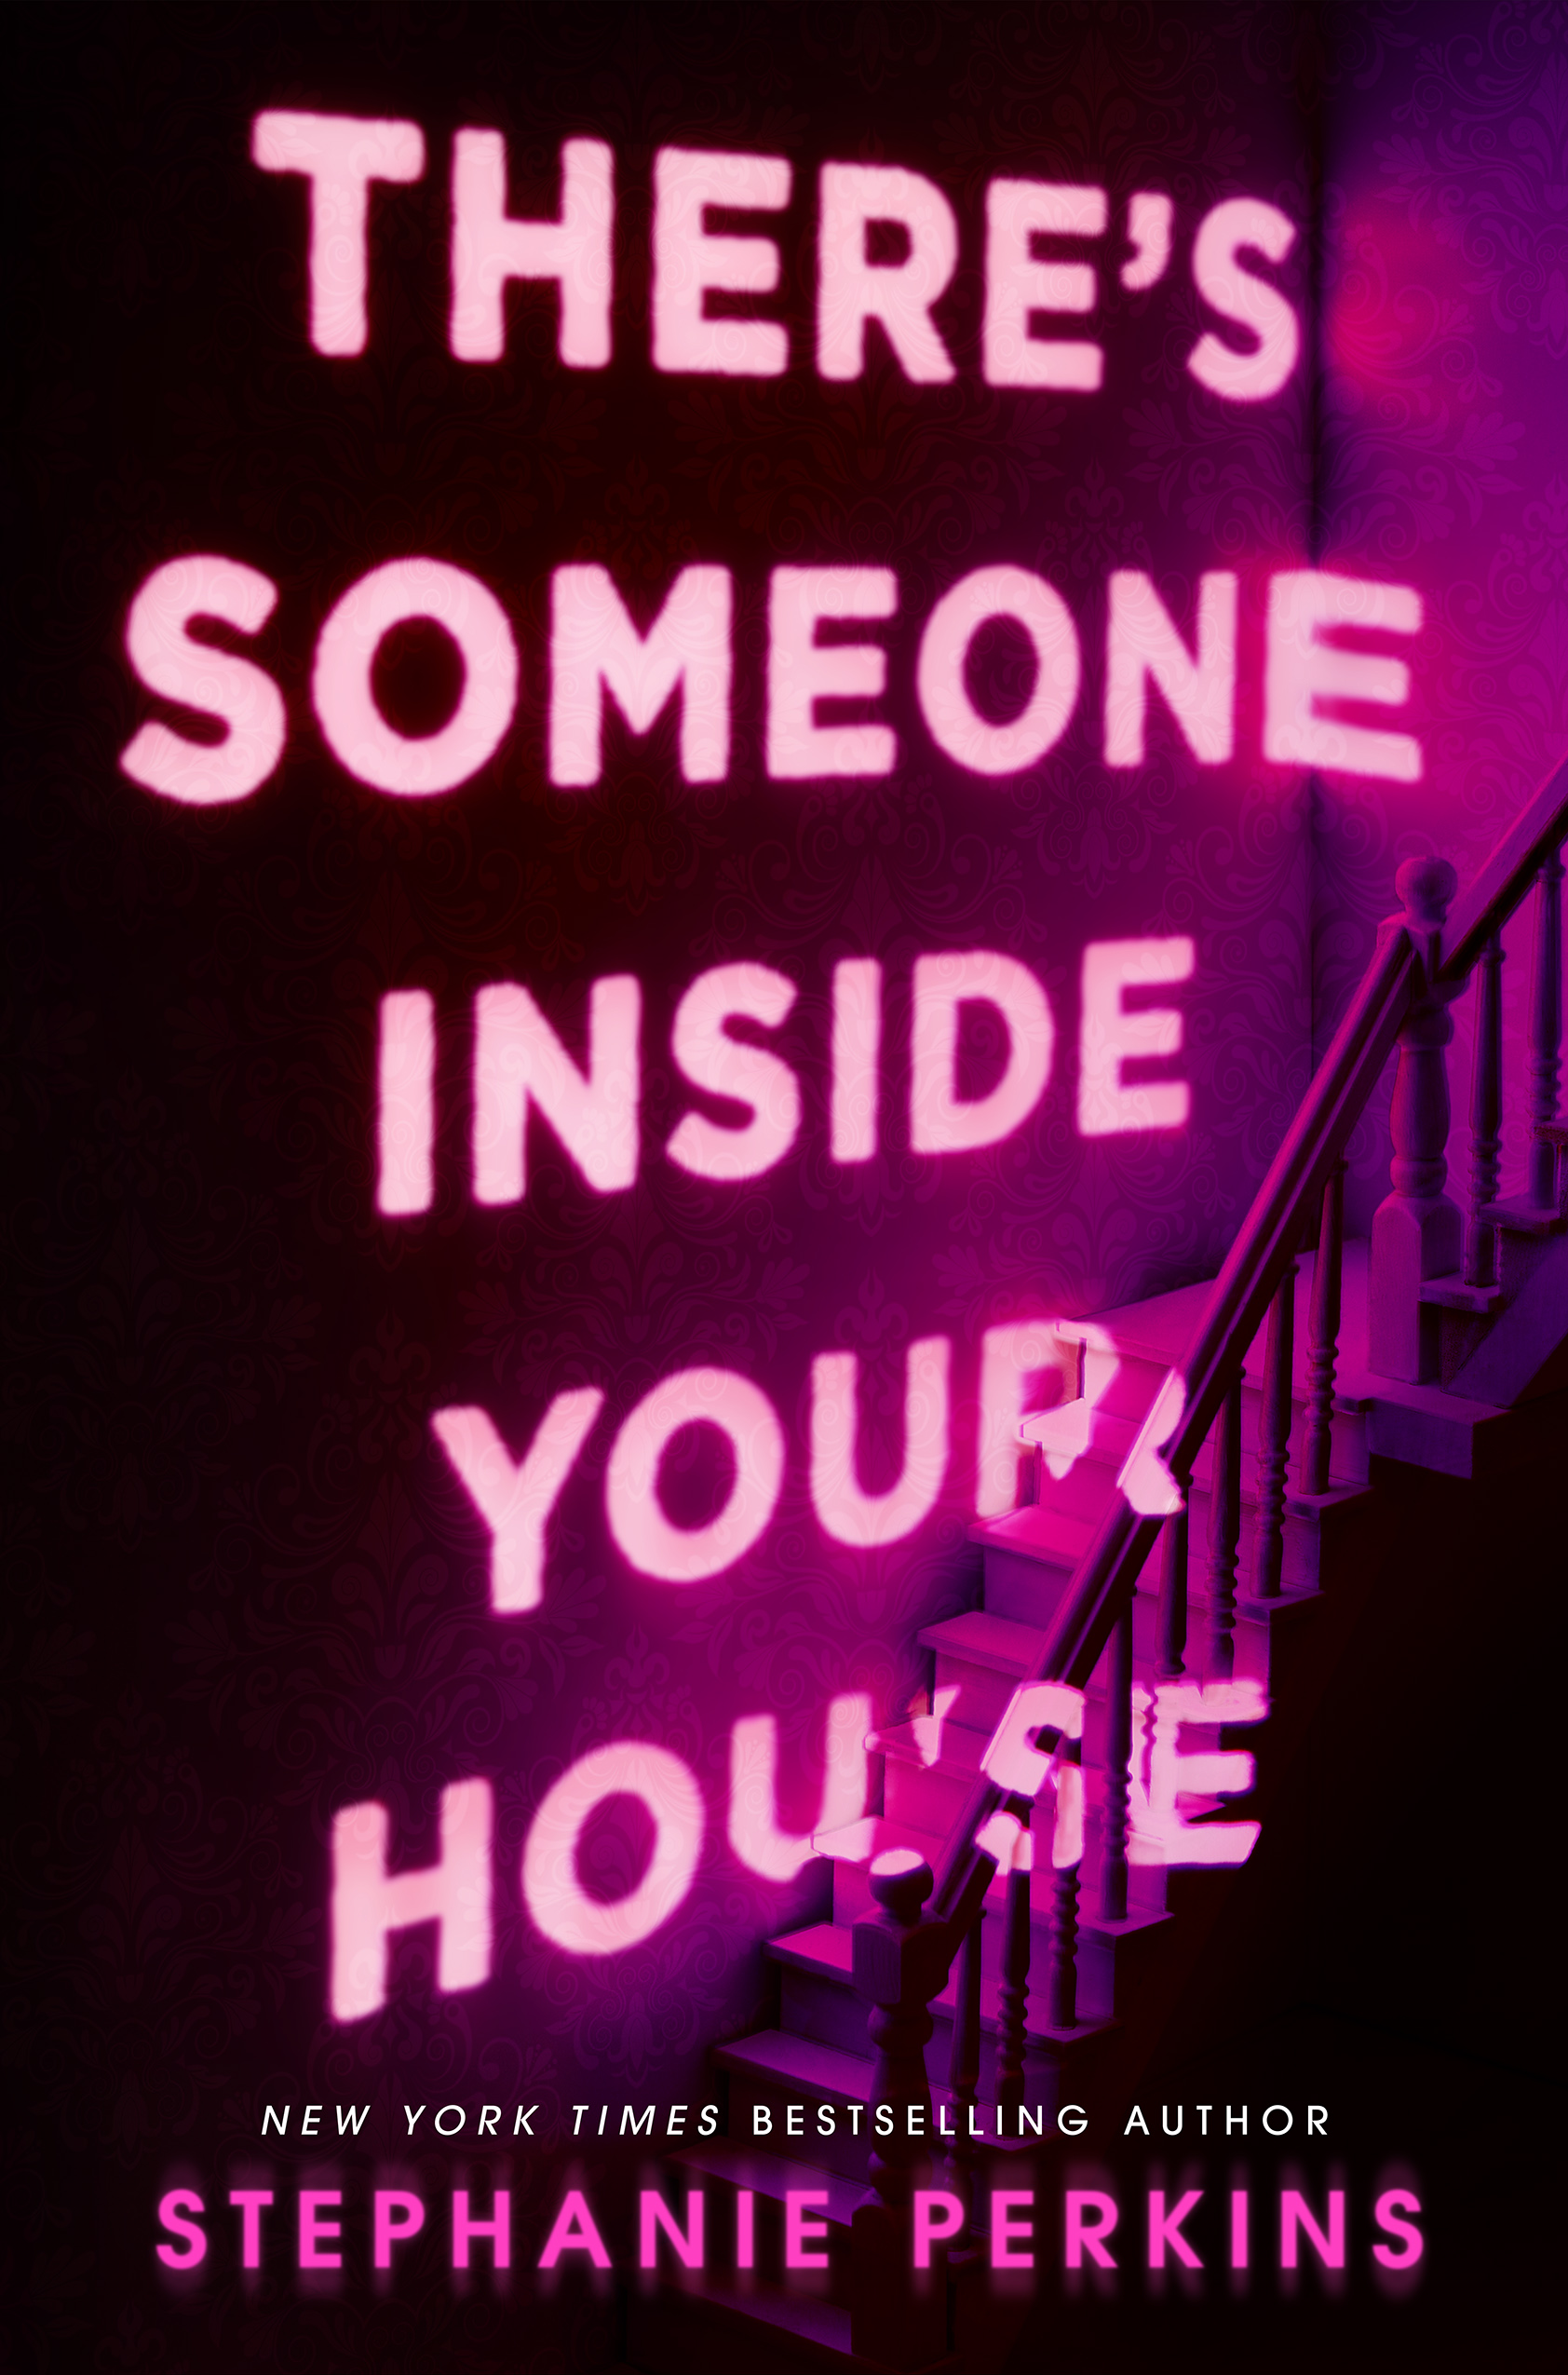 There's Someone Inside Your House, by Stephanie Perkins